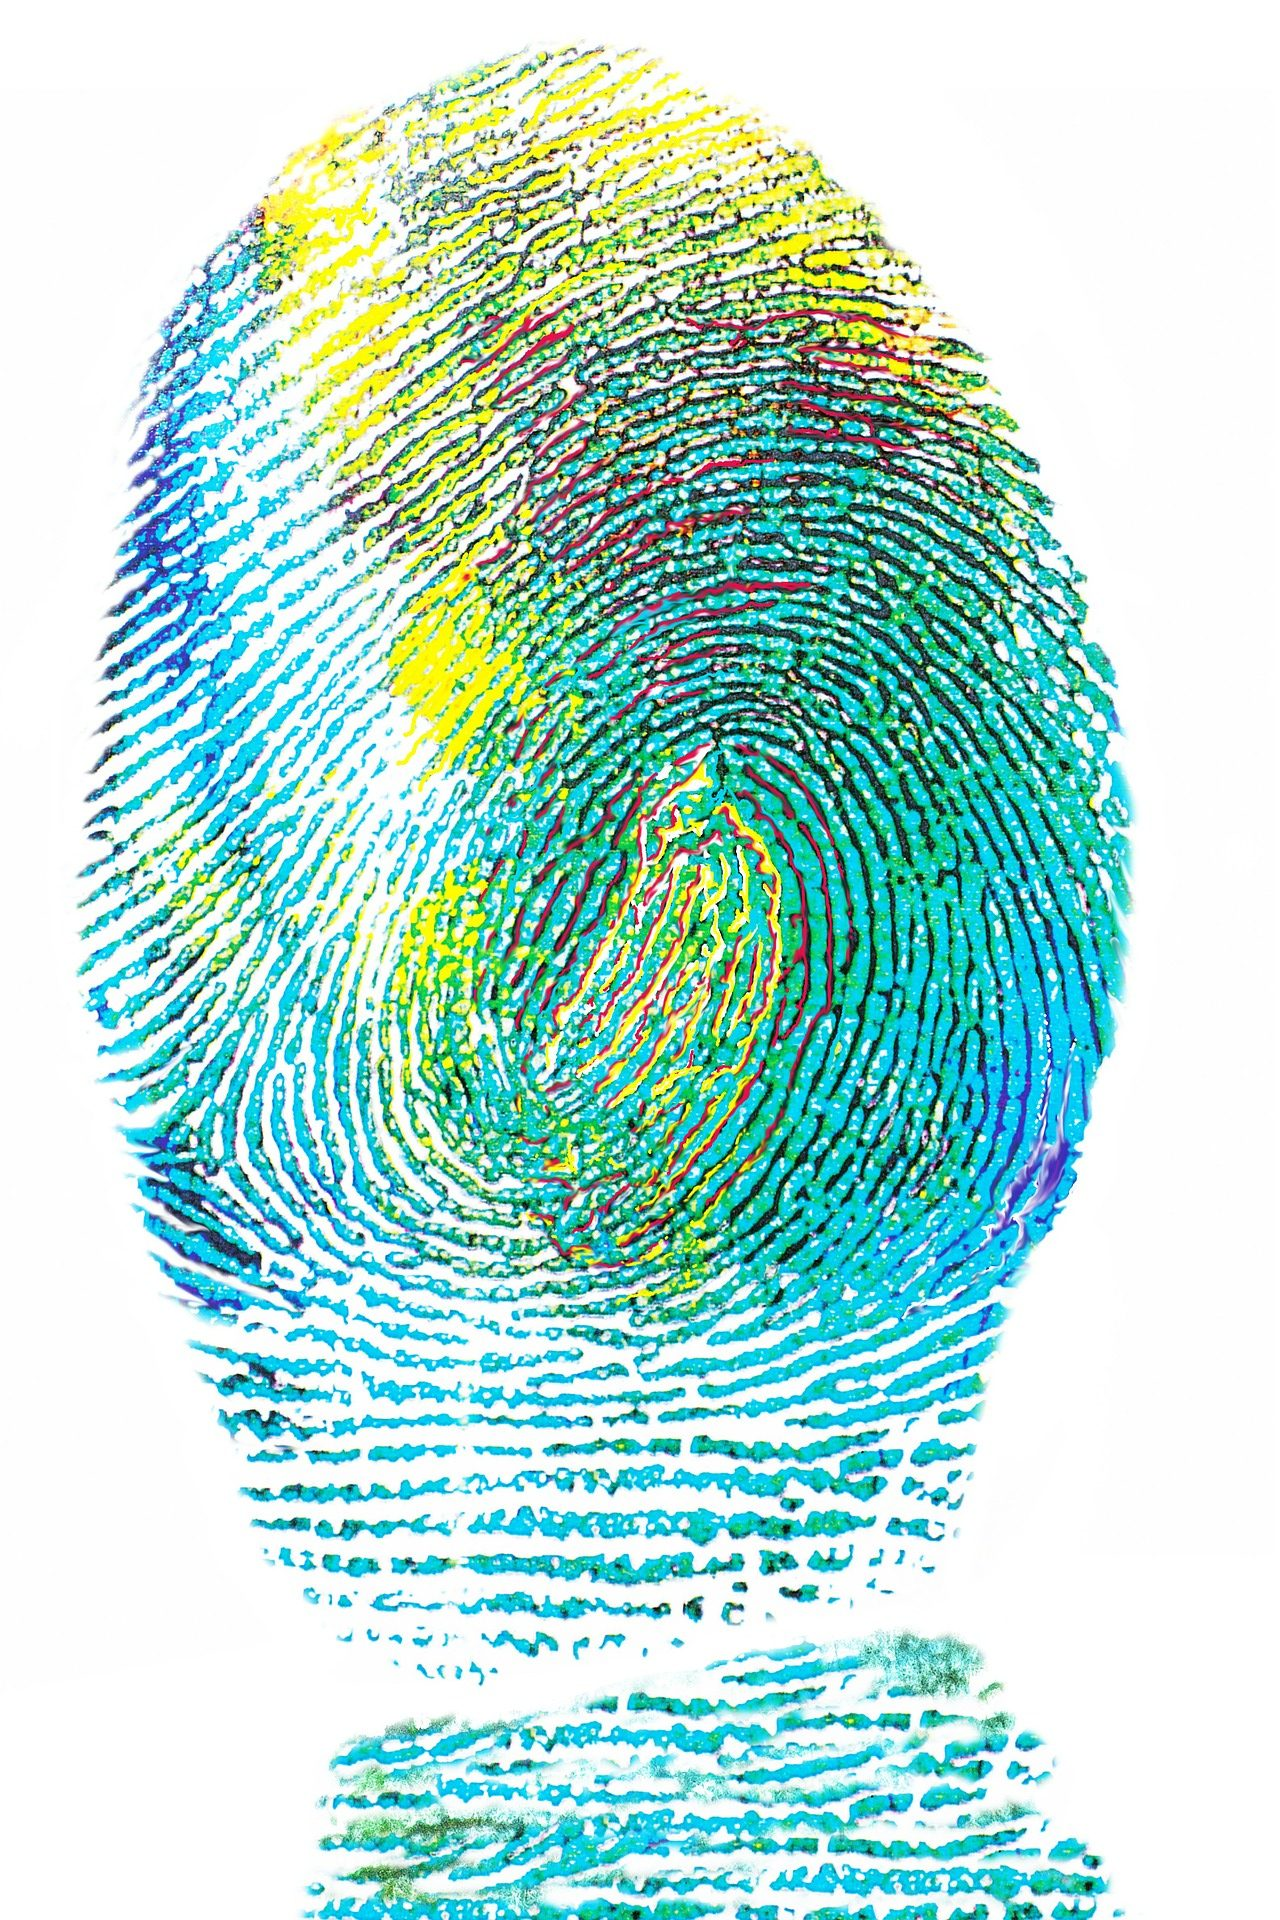 Fingerprint in blue and green pigment on a white background.